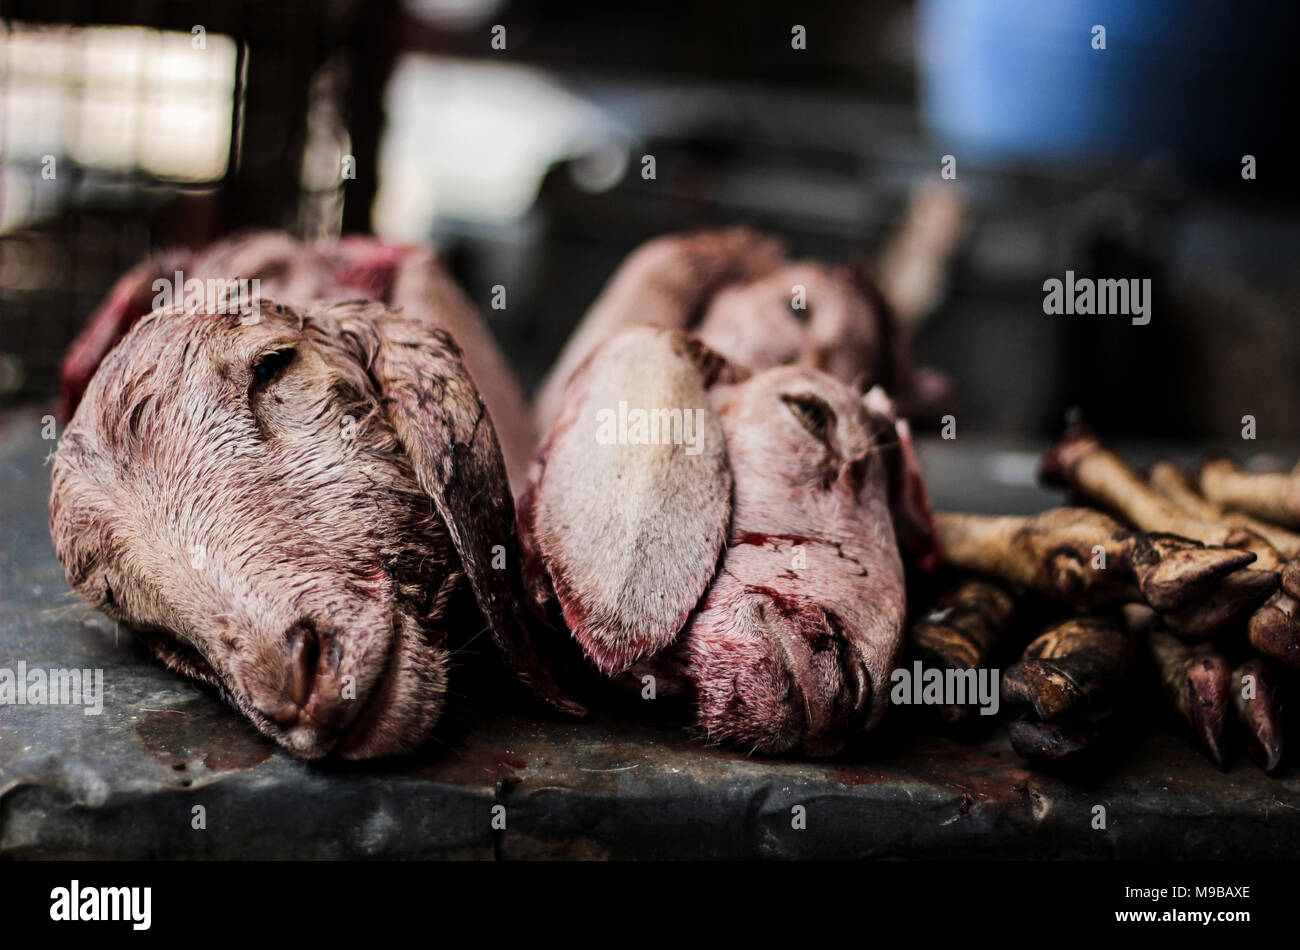 Silence in a slaughter house - Stock Image